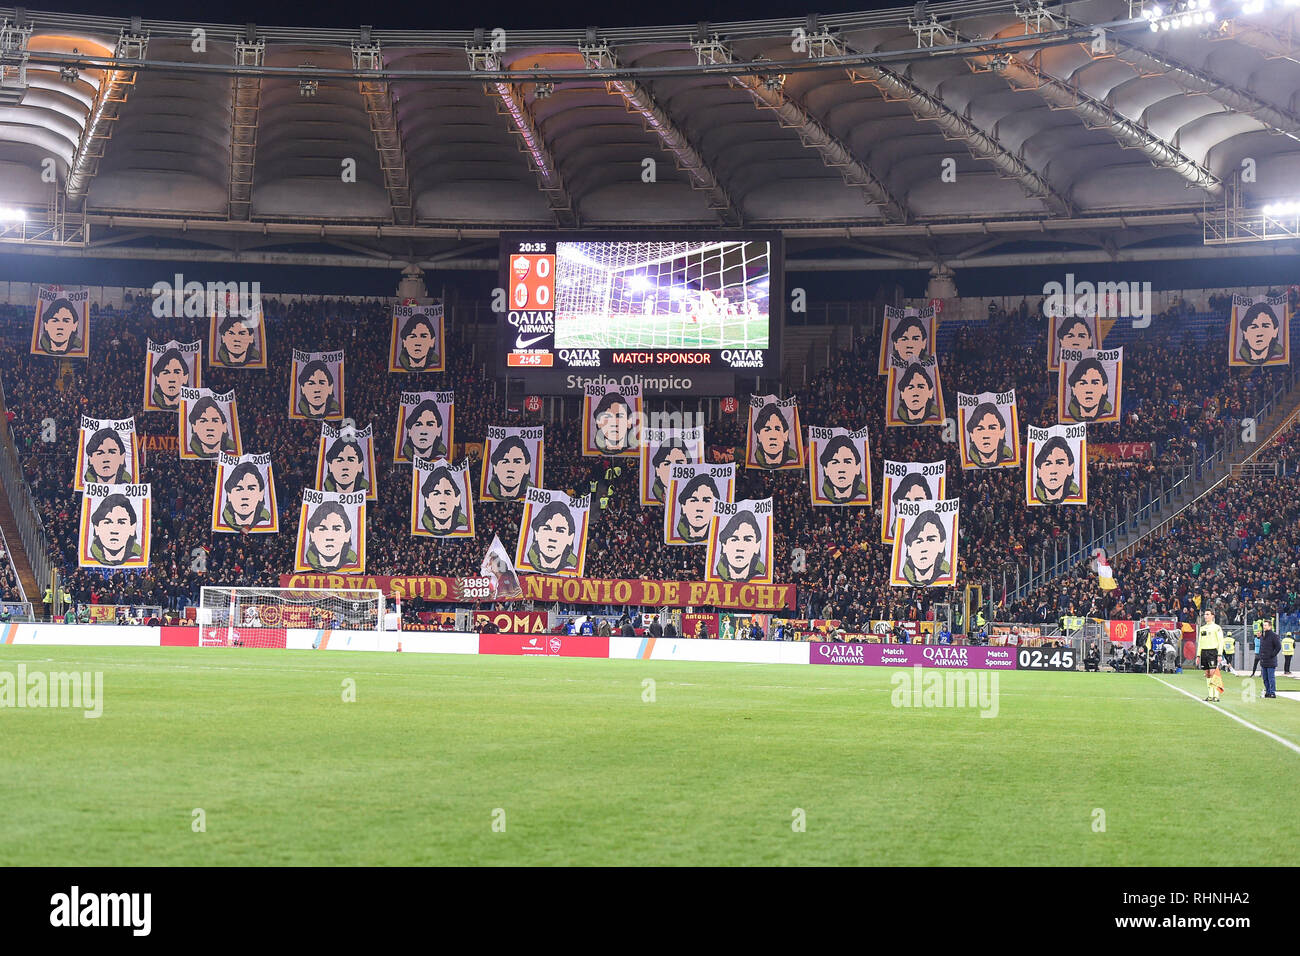 Page 2 Football Ultras Italy High Resolution Stock Photography